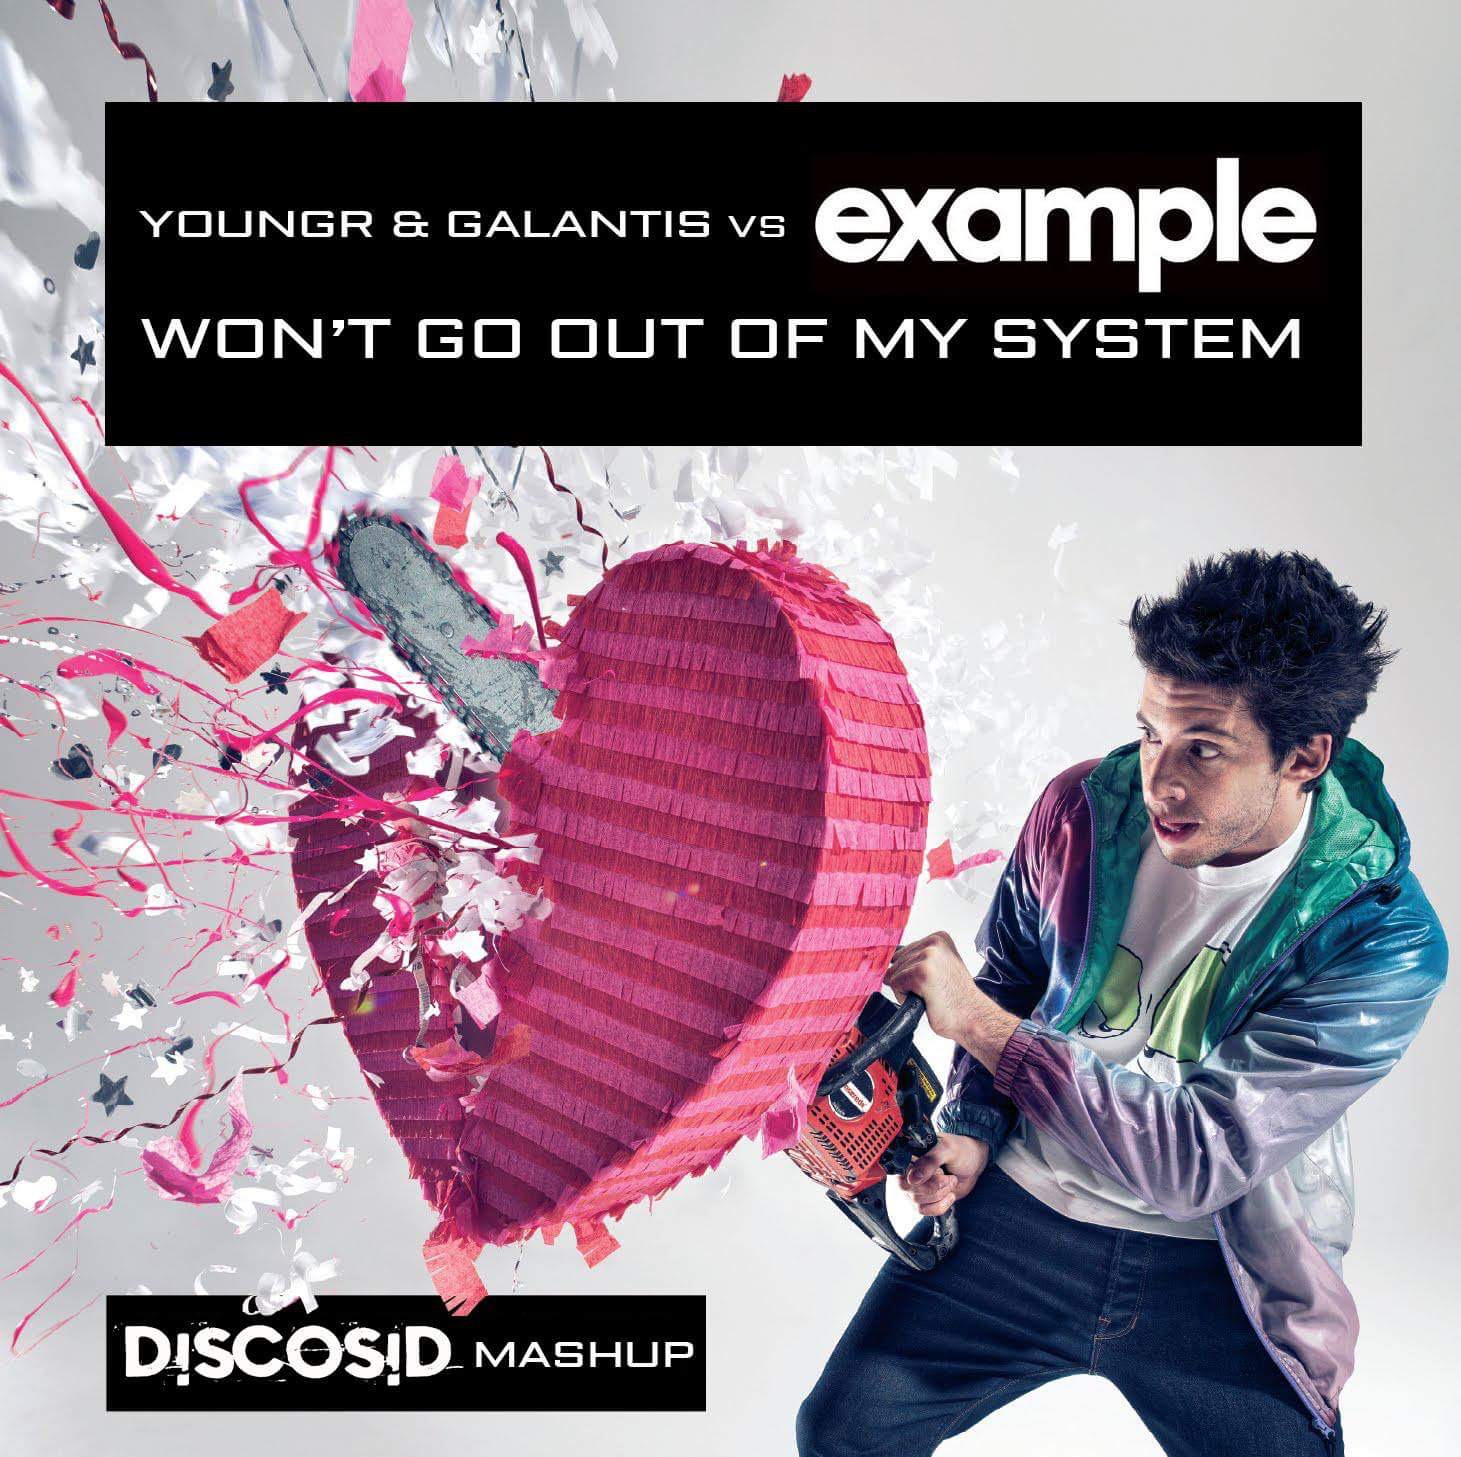 Youngr & Galantis Vs Example - Won't Go Out Of My System (Discosid Mashup)